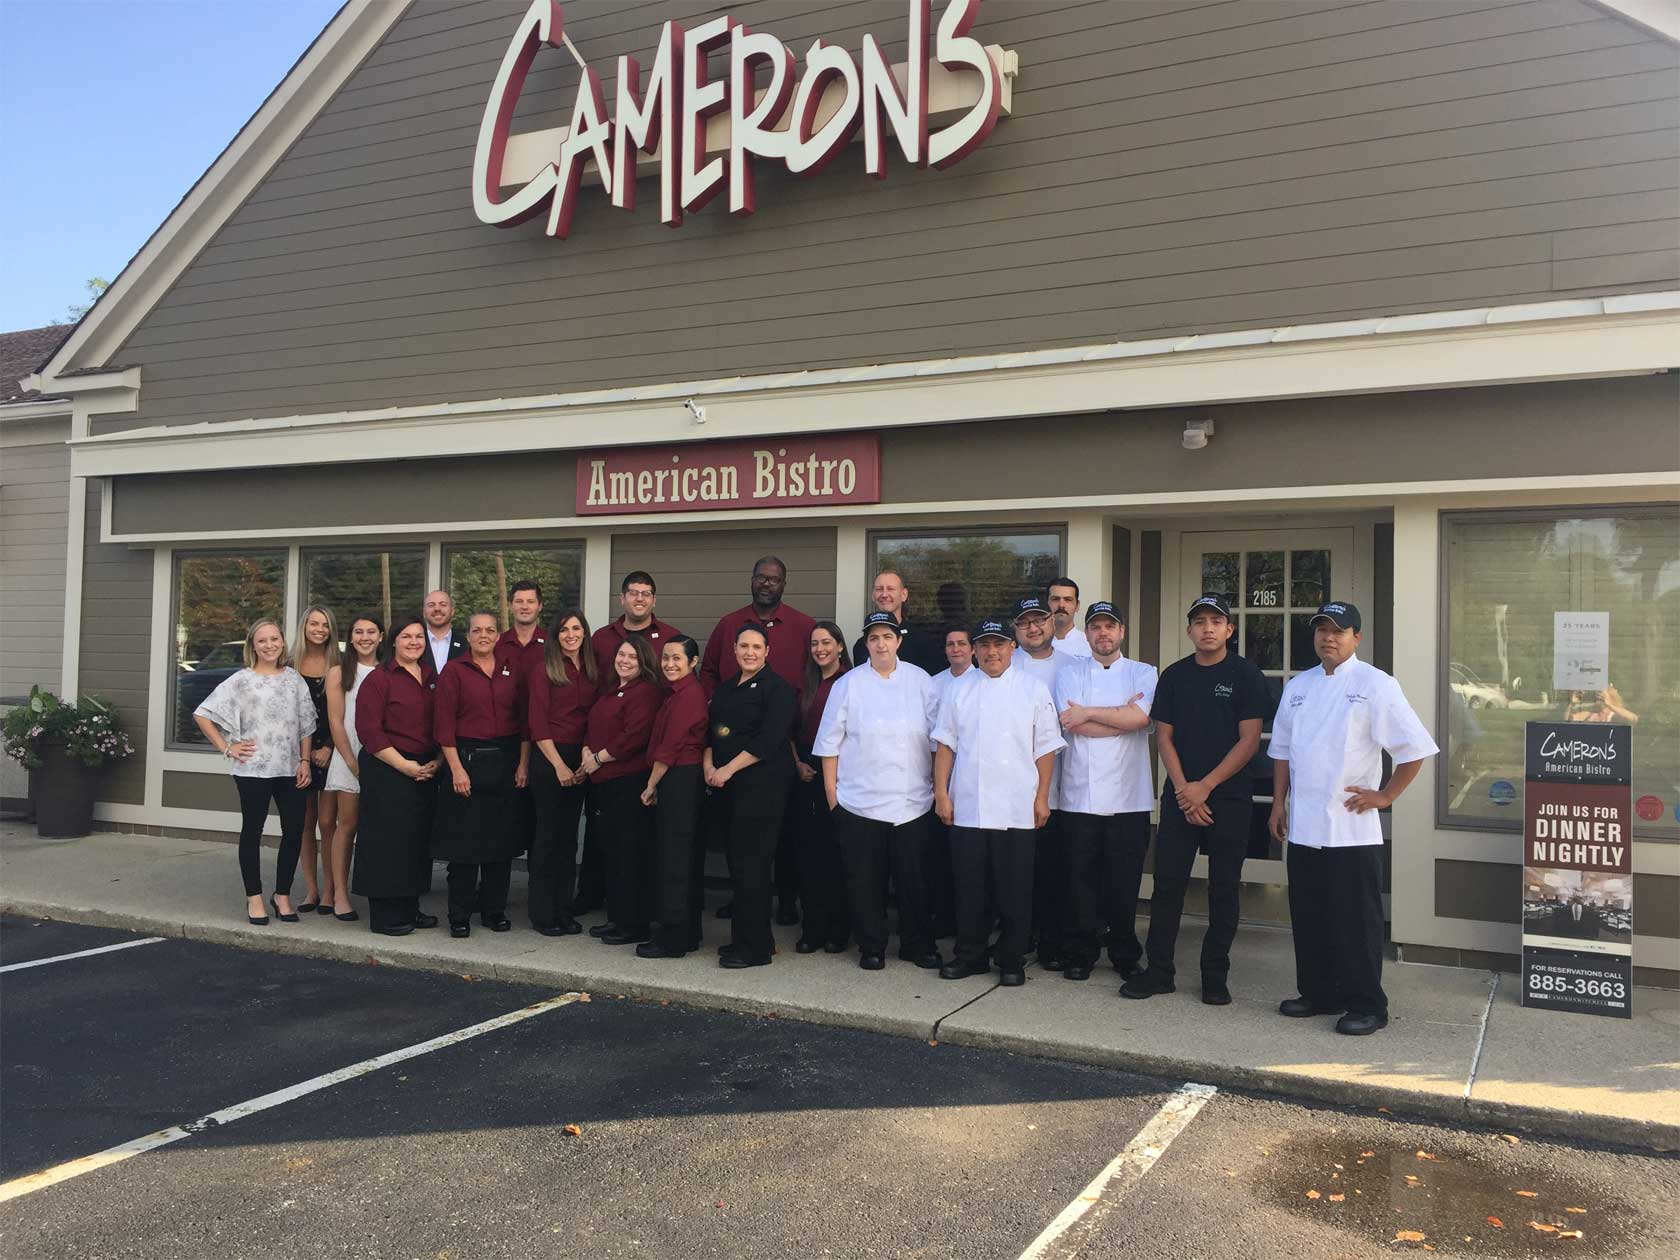 A photograph of Cameron's American Bistro staff.